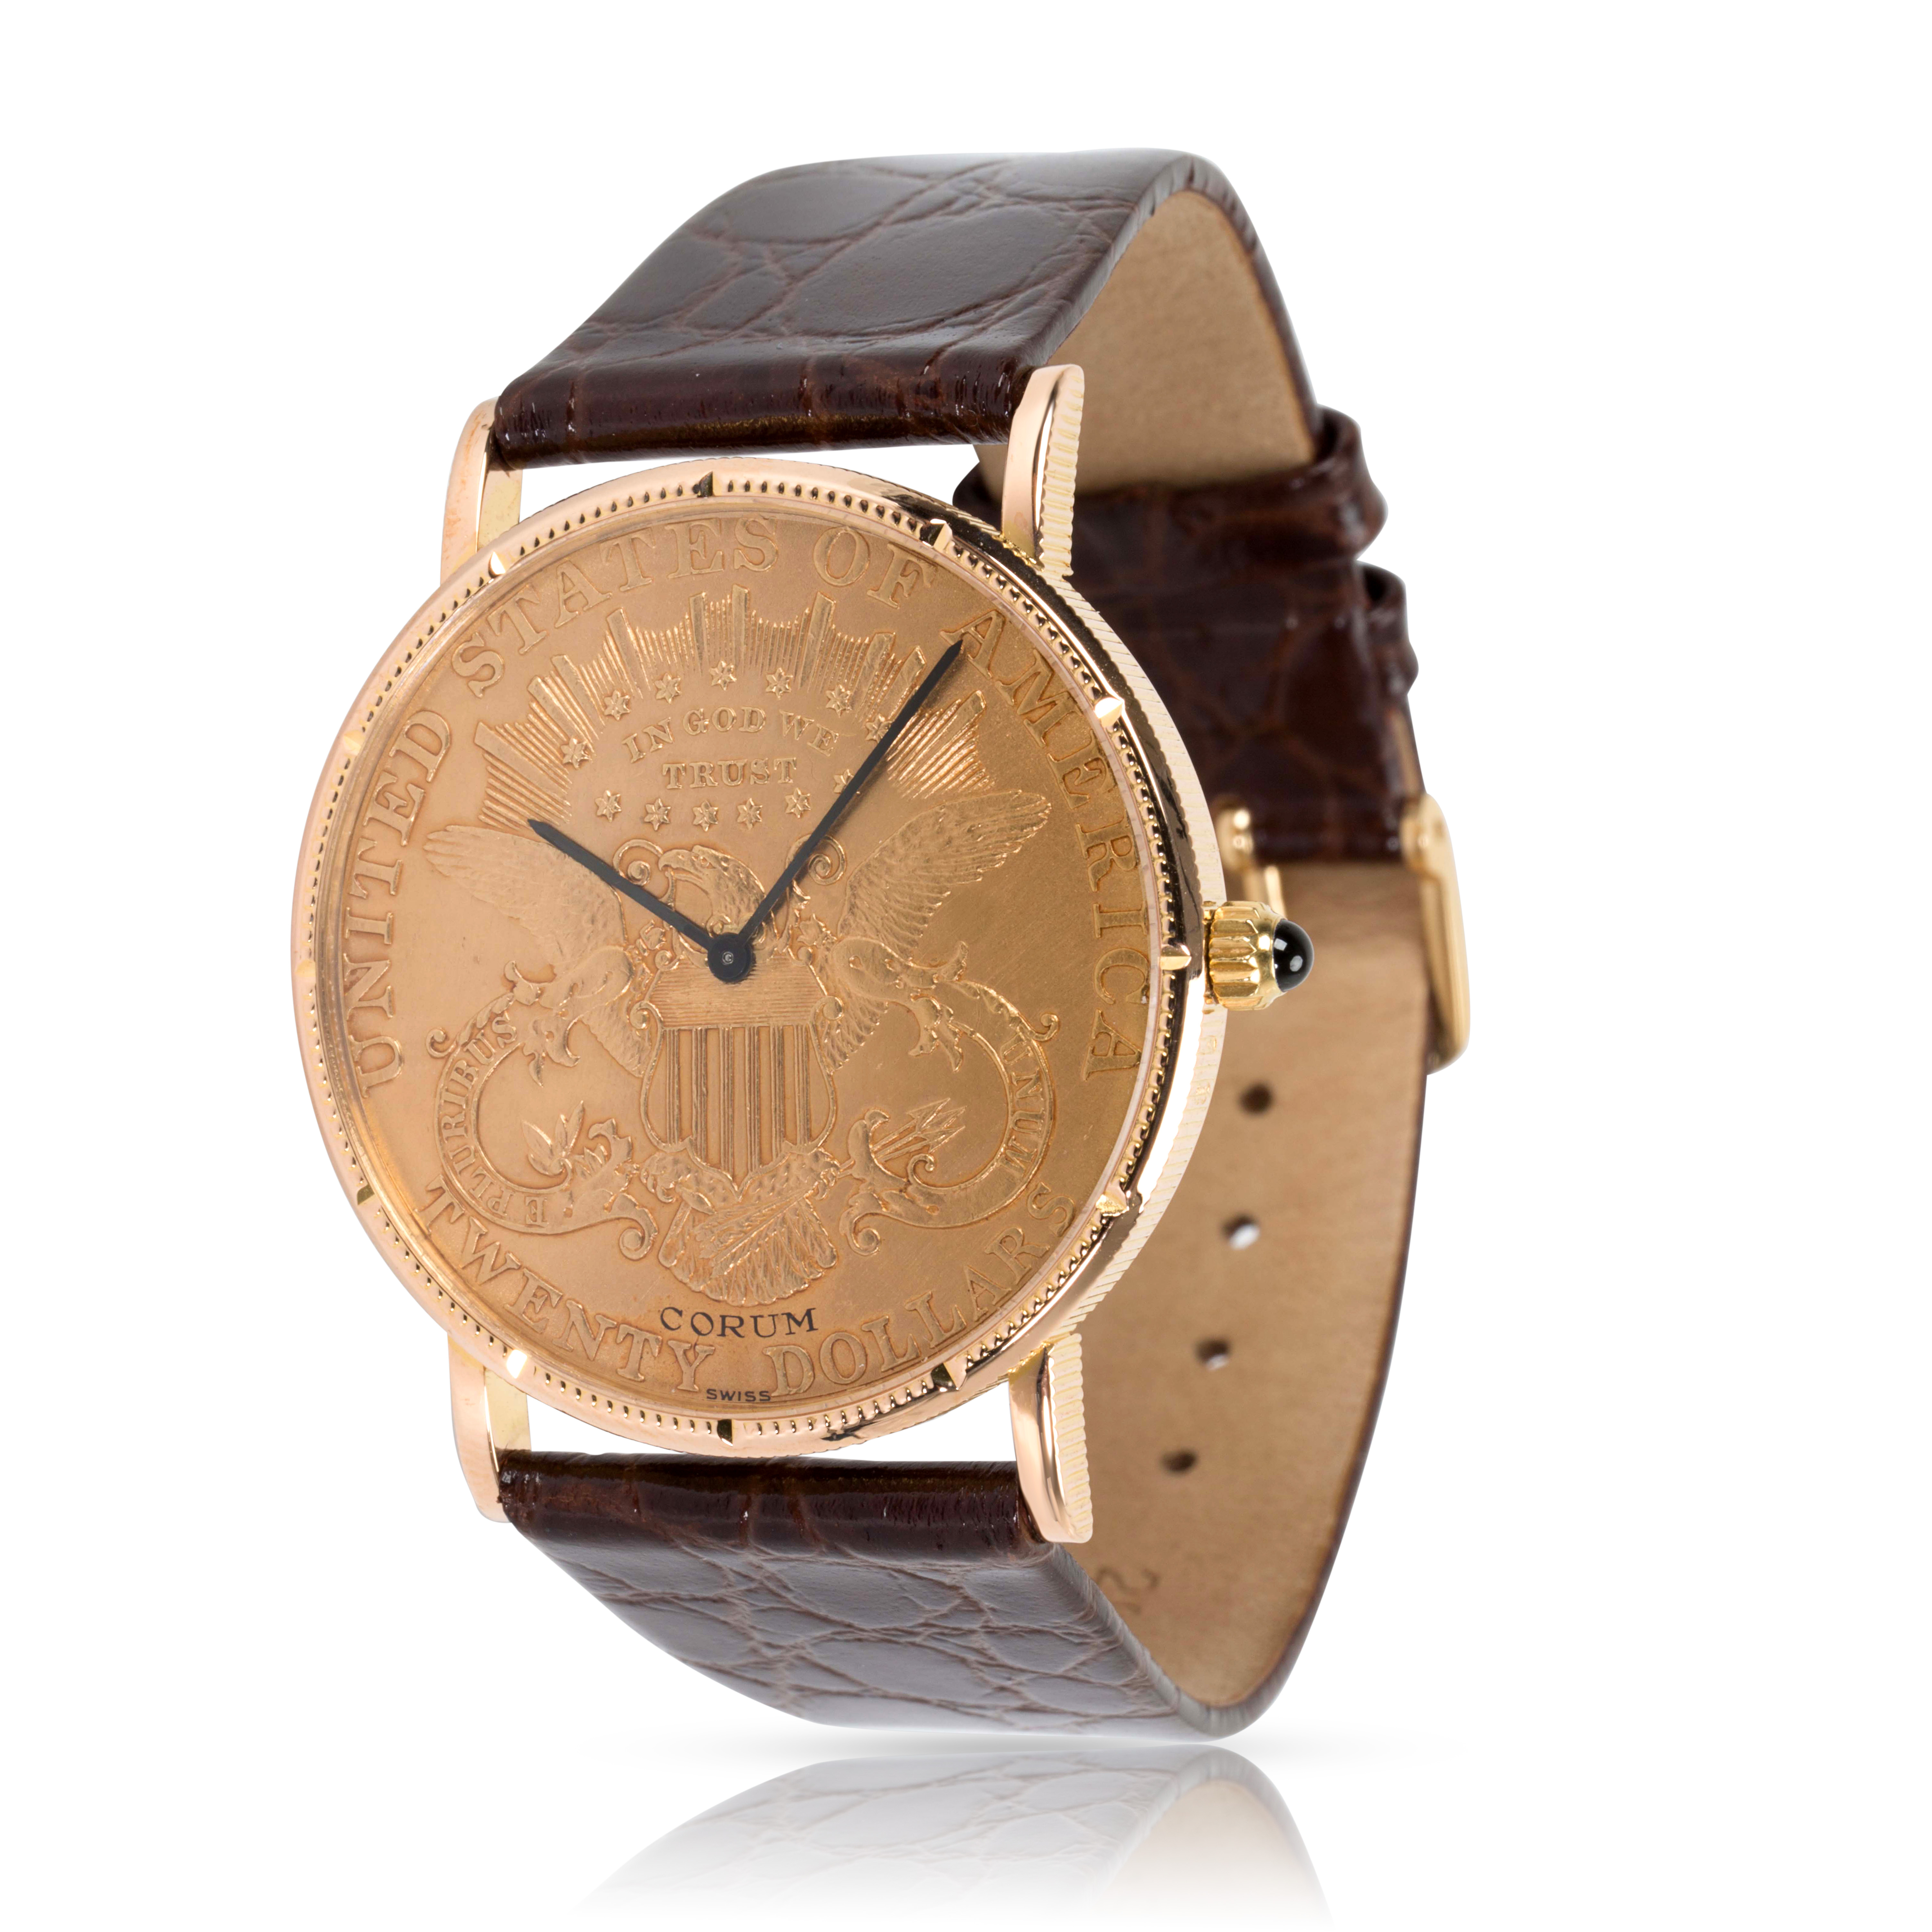 db62356f57212 Image is loading Corum-20-Coin-4414556-Men-039-s-Watch-